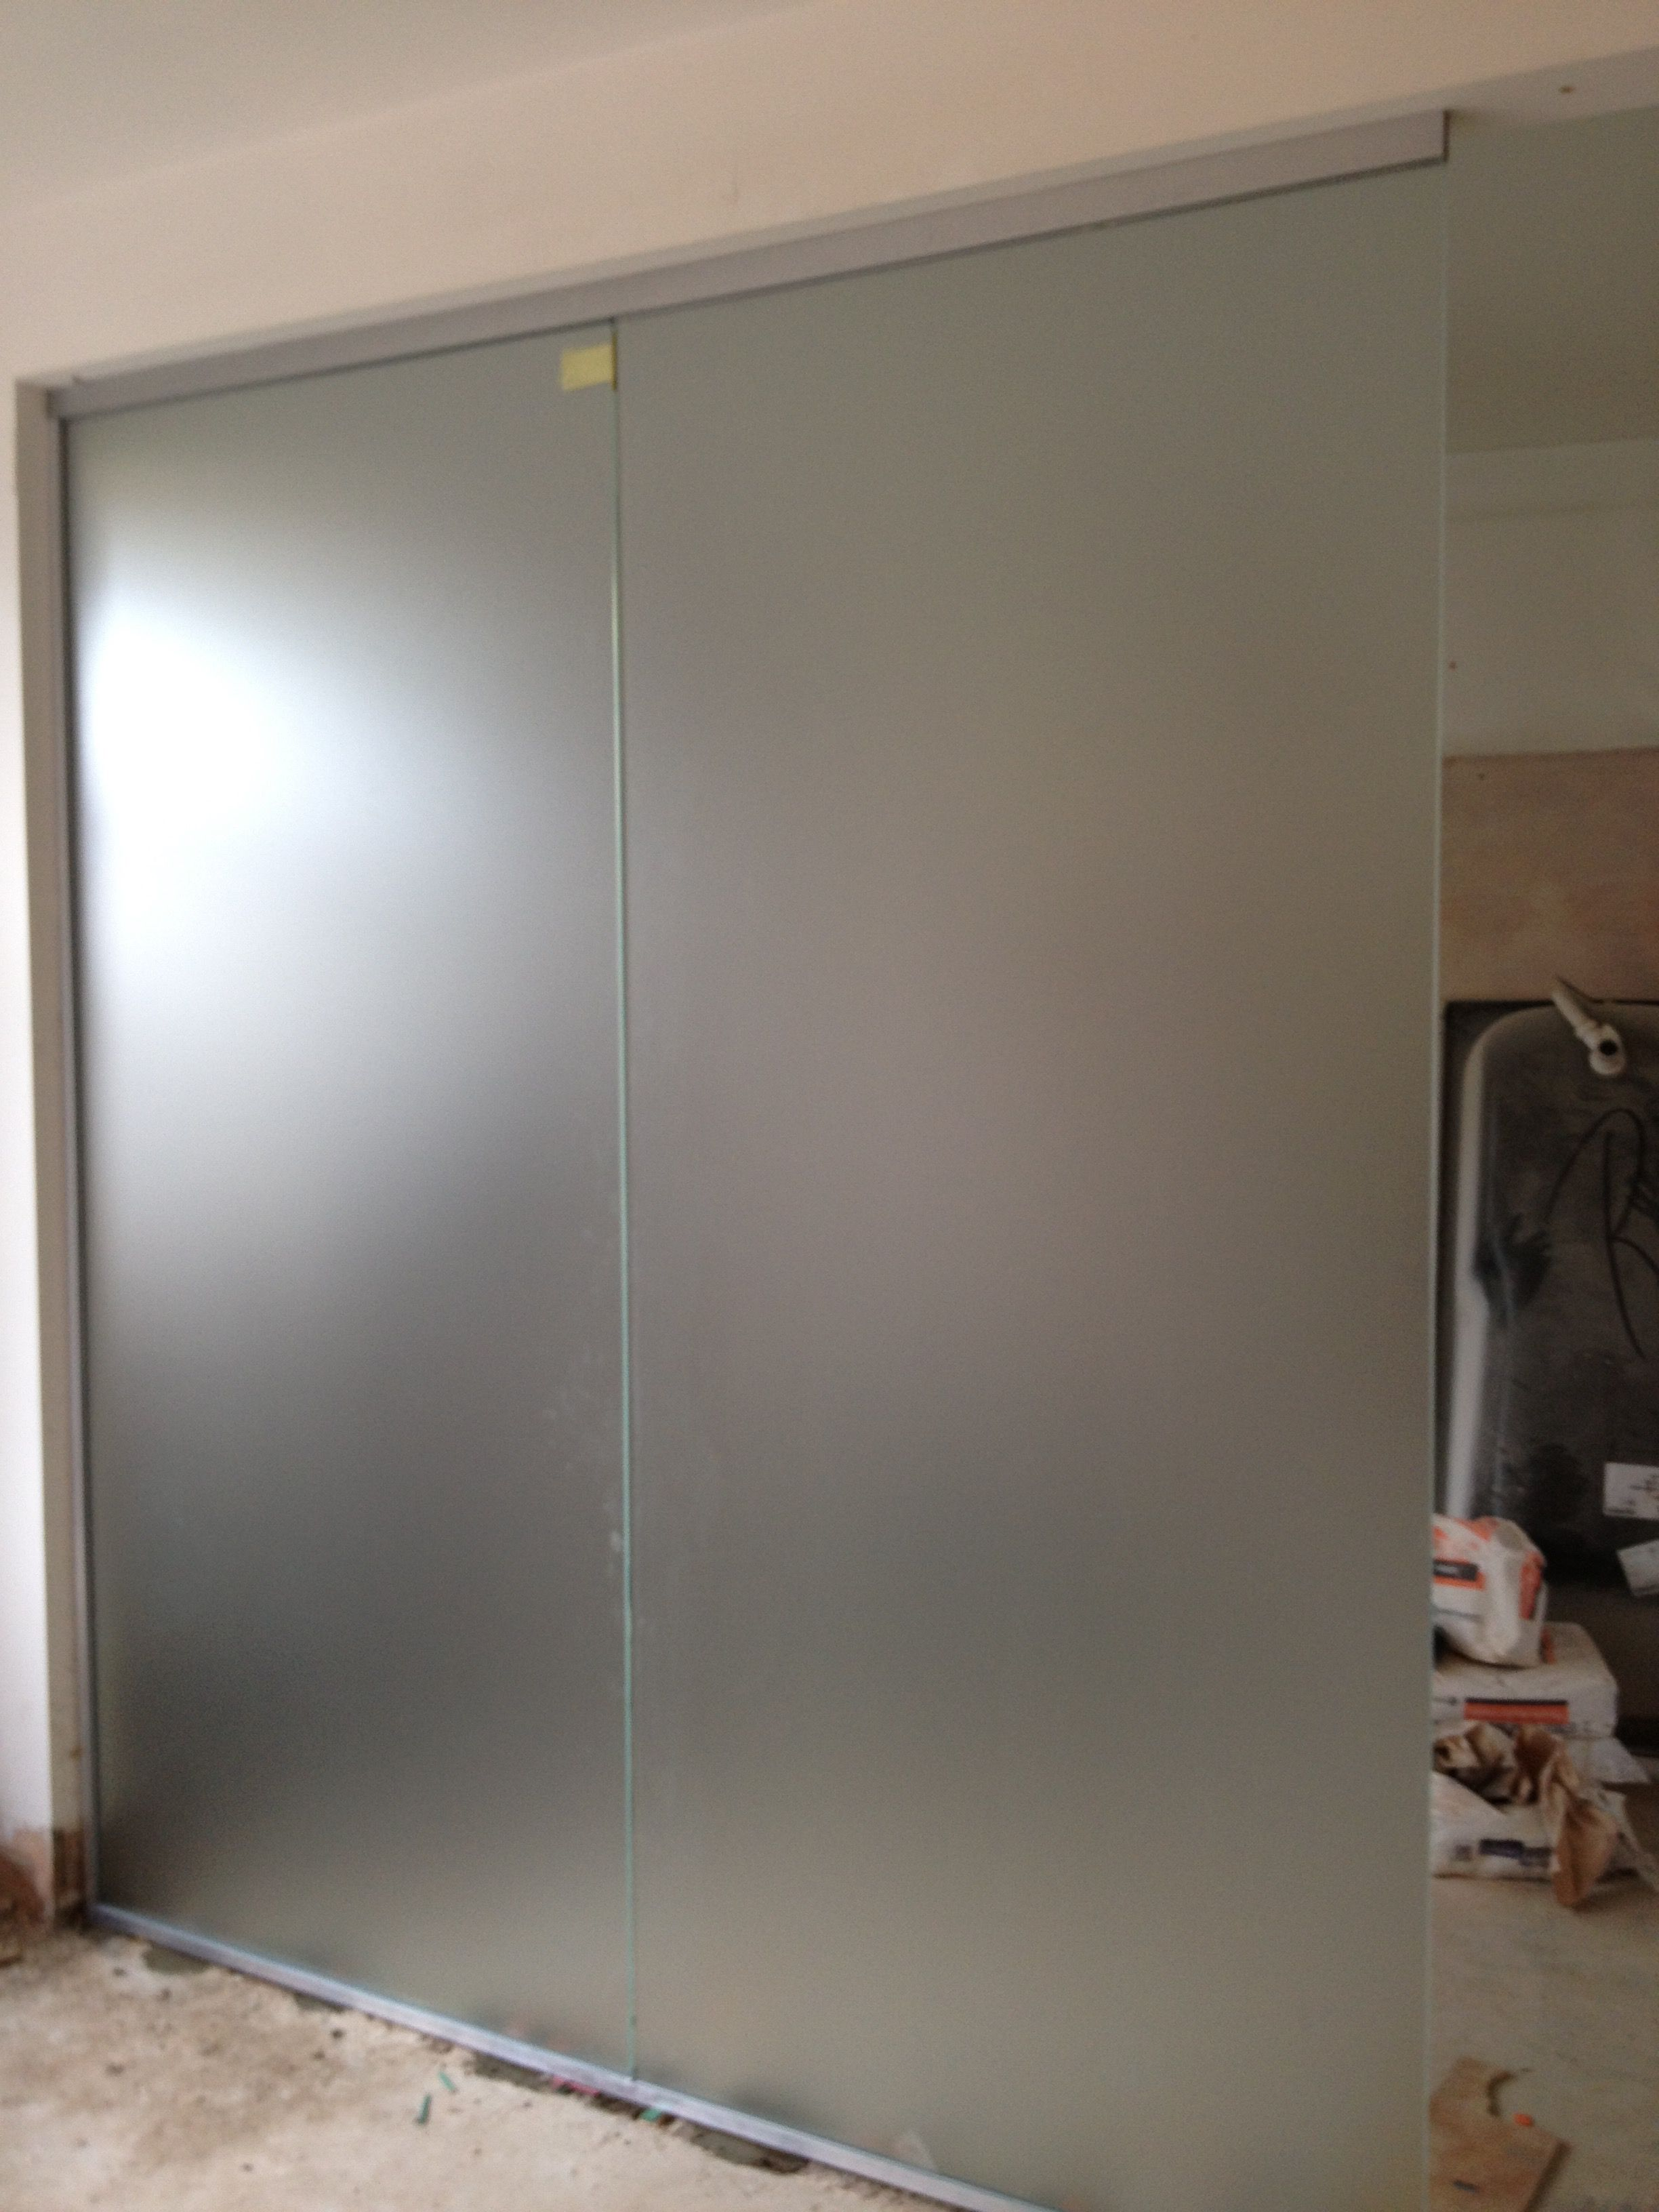 Bespoke glass partition to separate a bathroom and a bedroom with bespoke glass partition to separate a bathroom and a bedroom with opaque glass unique and planetlyrics Choice Image